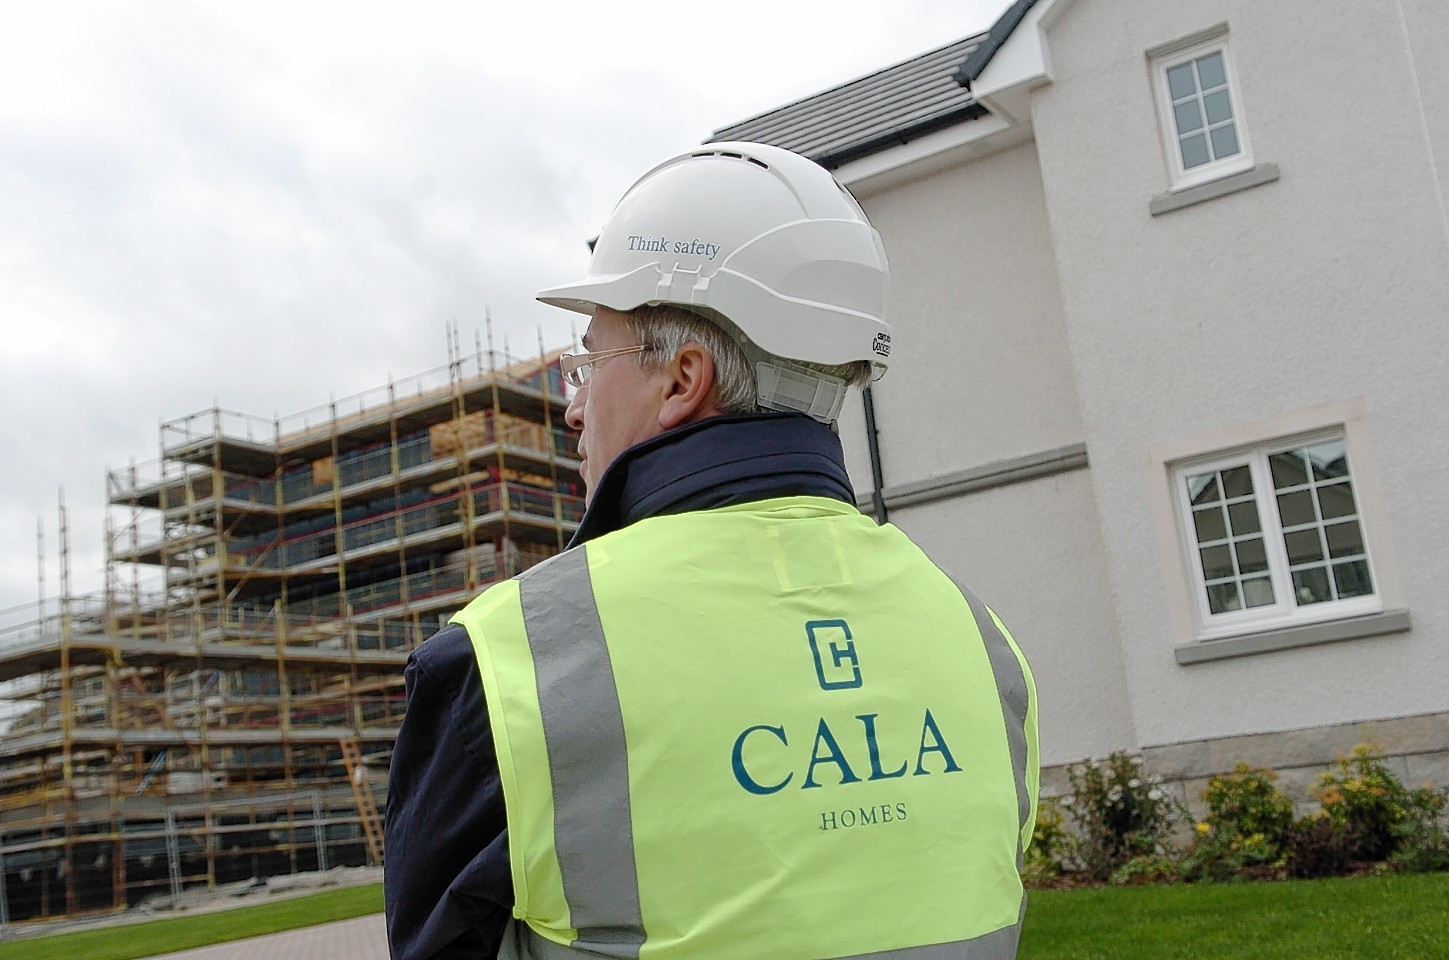 Cala Homes wants to build 57 homes at Conglass